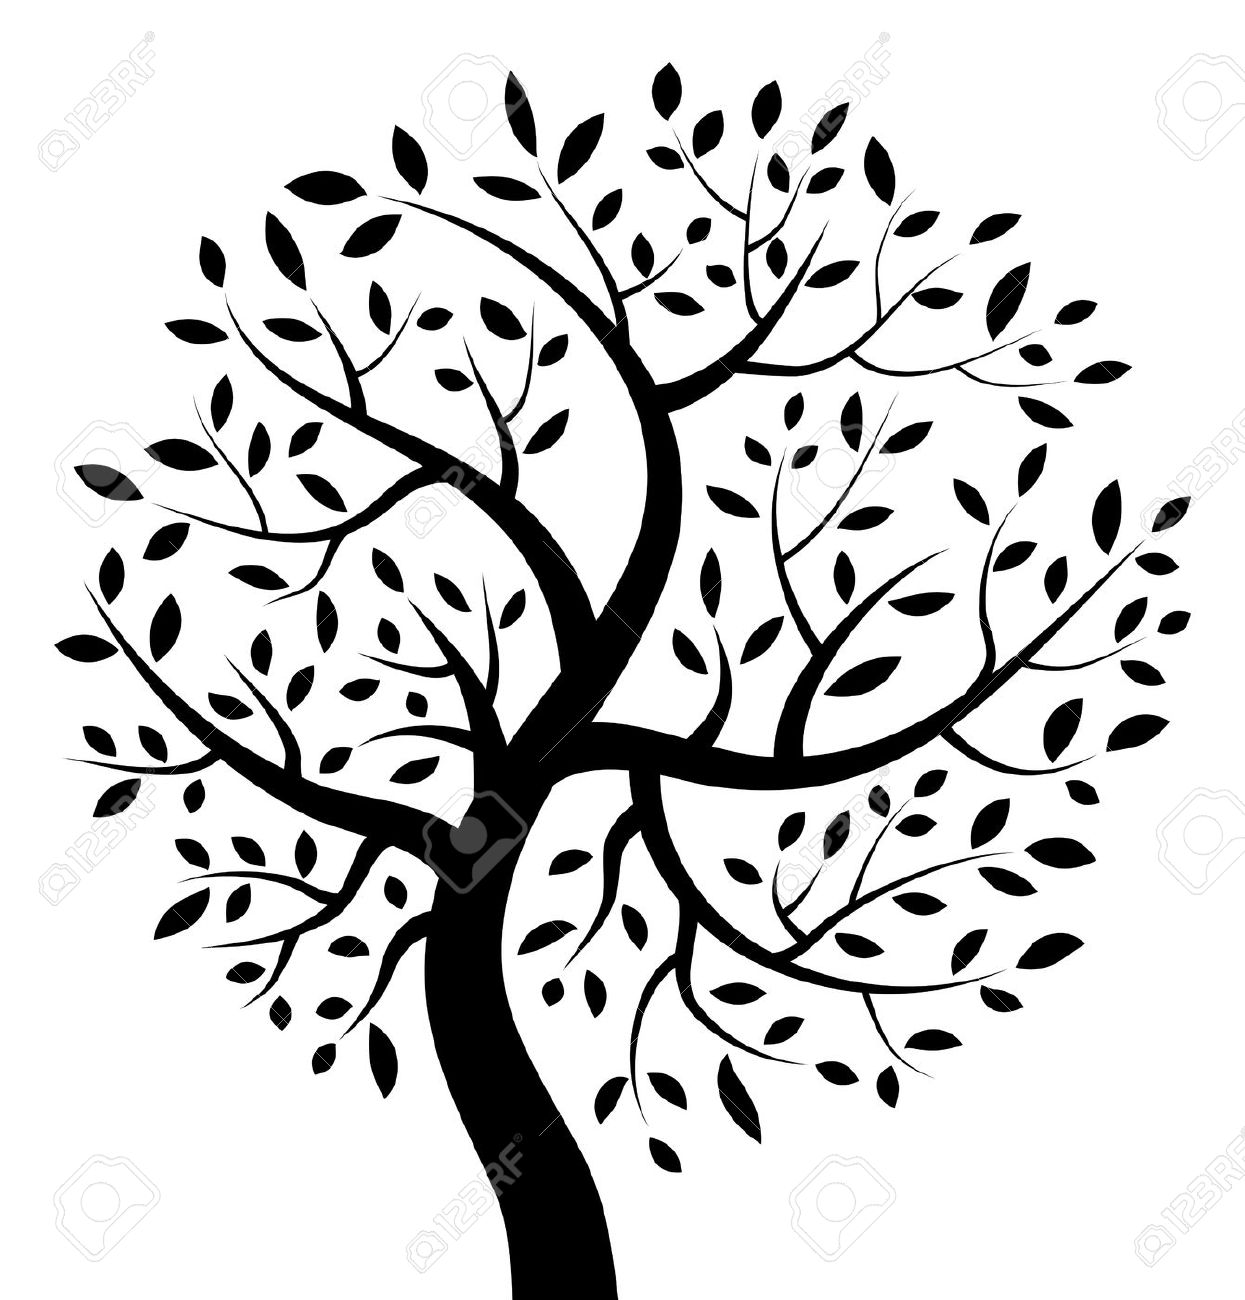 1245x1300 Wall Decal Black And White Tree Of Life Clipart 1 Handcut